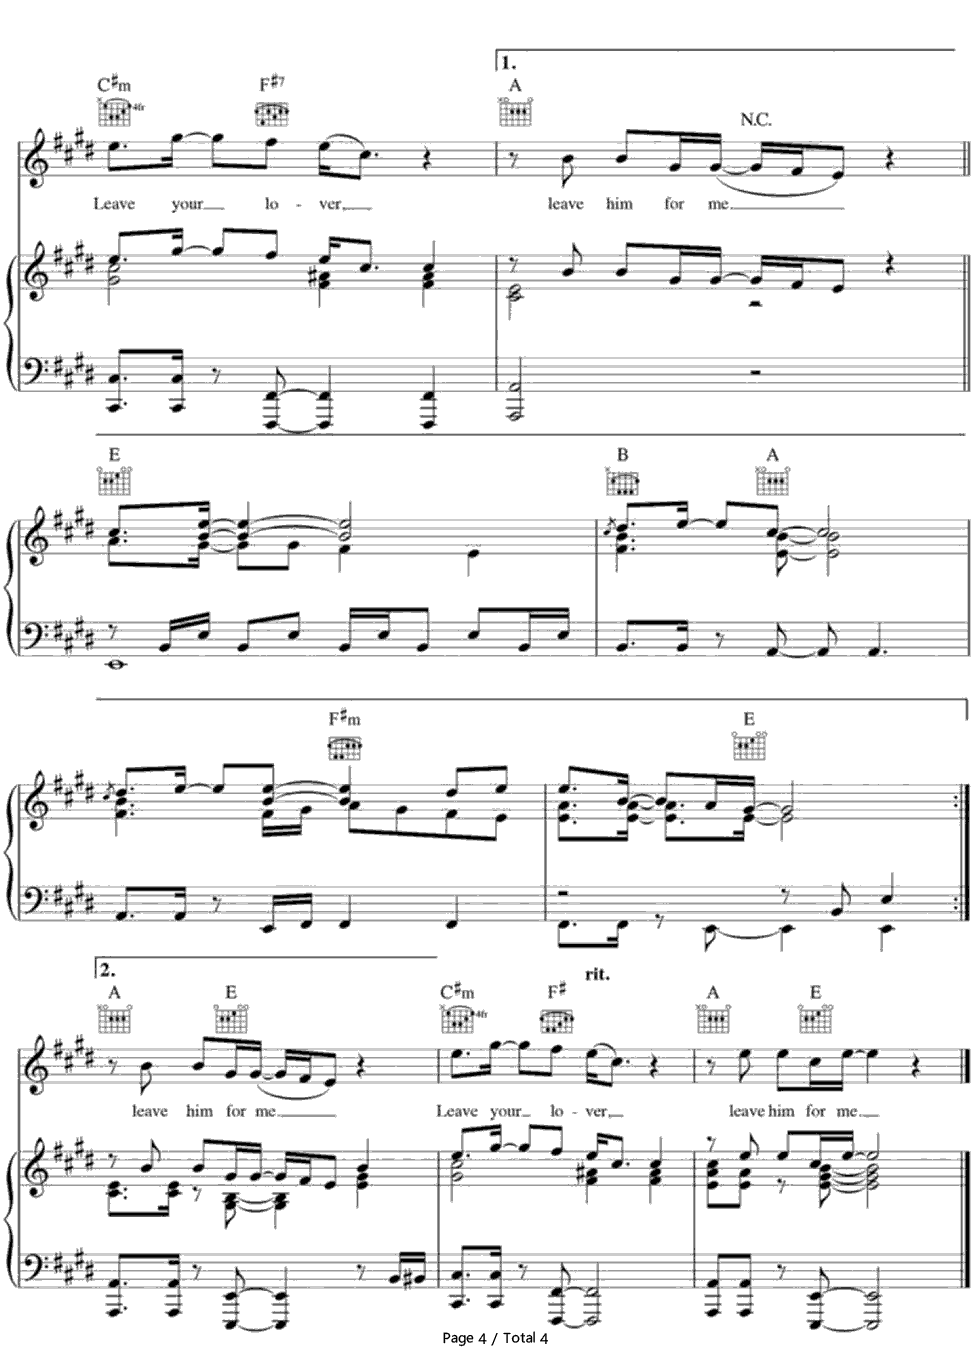 how to play stay with me on piano chords